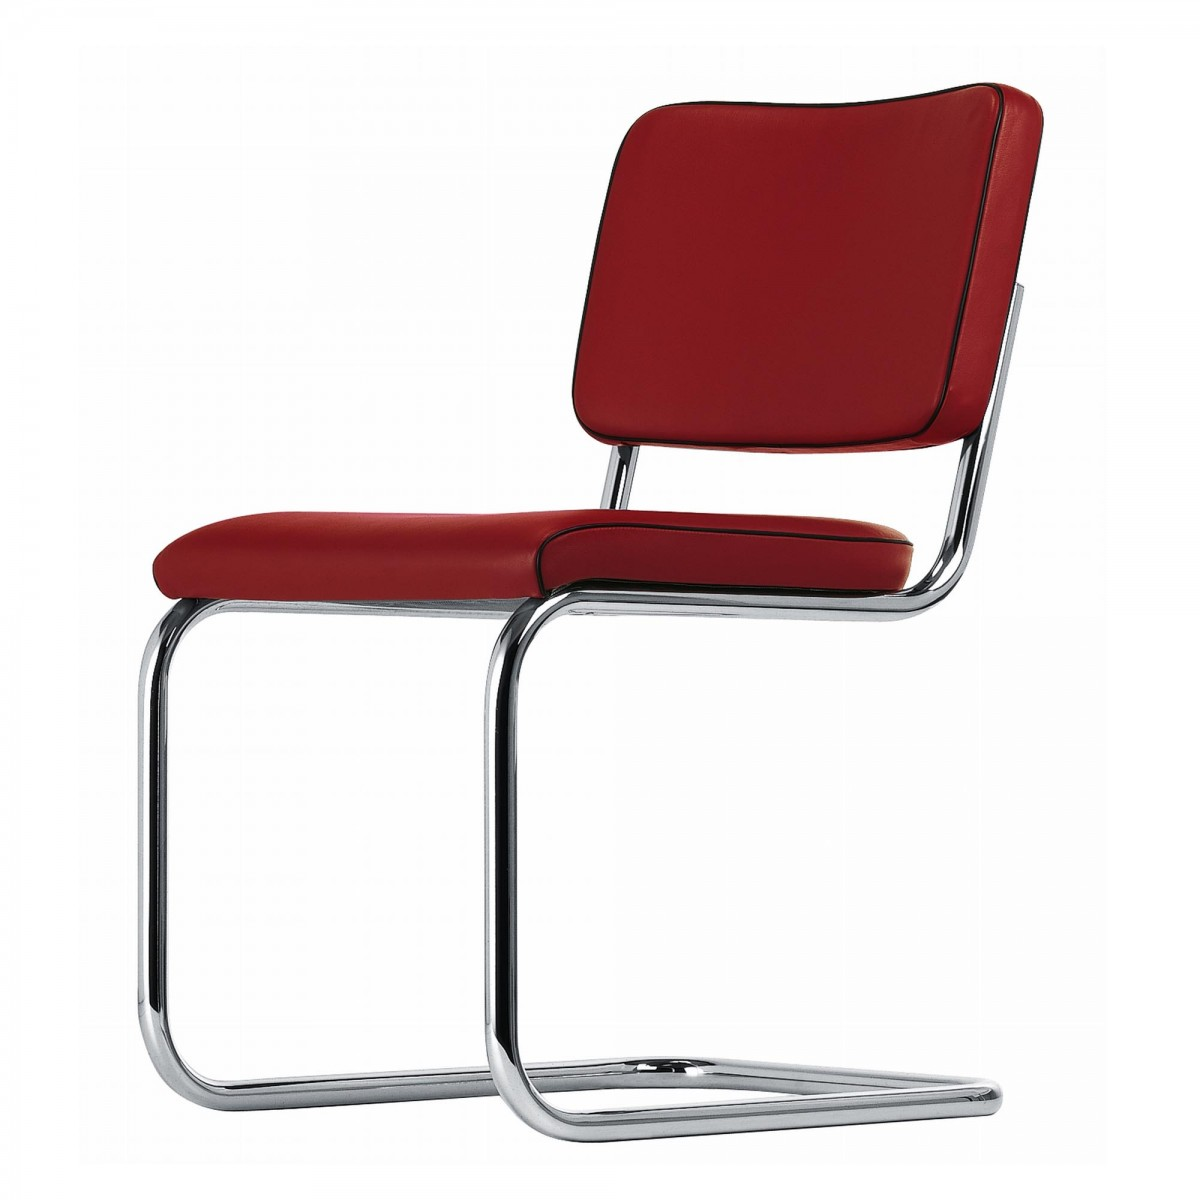 Chaise s32 pv en cuir rouge thonet for Chaise cuir rouge